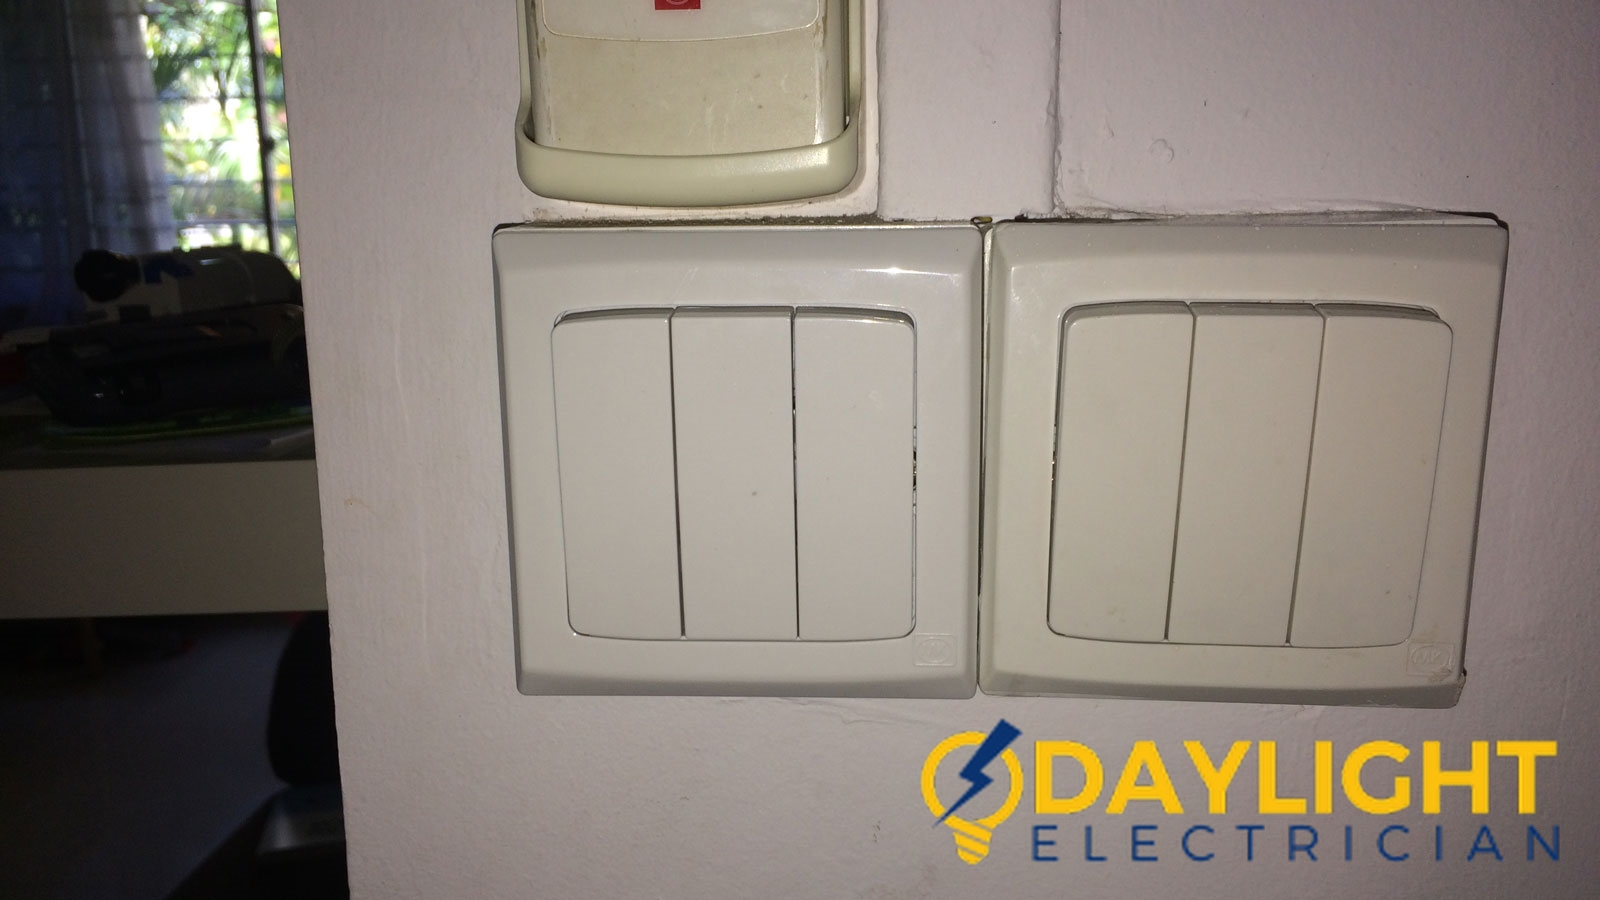 wall light switch repair daylight electrician singapore hdb clementi 1 wm